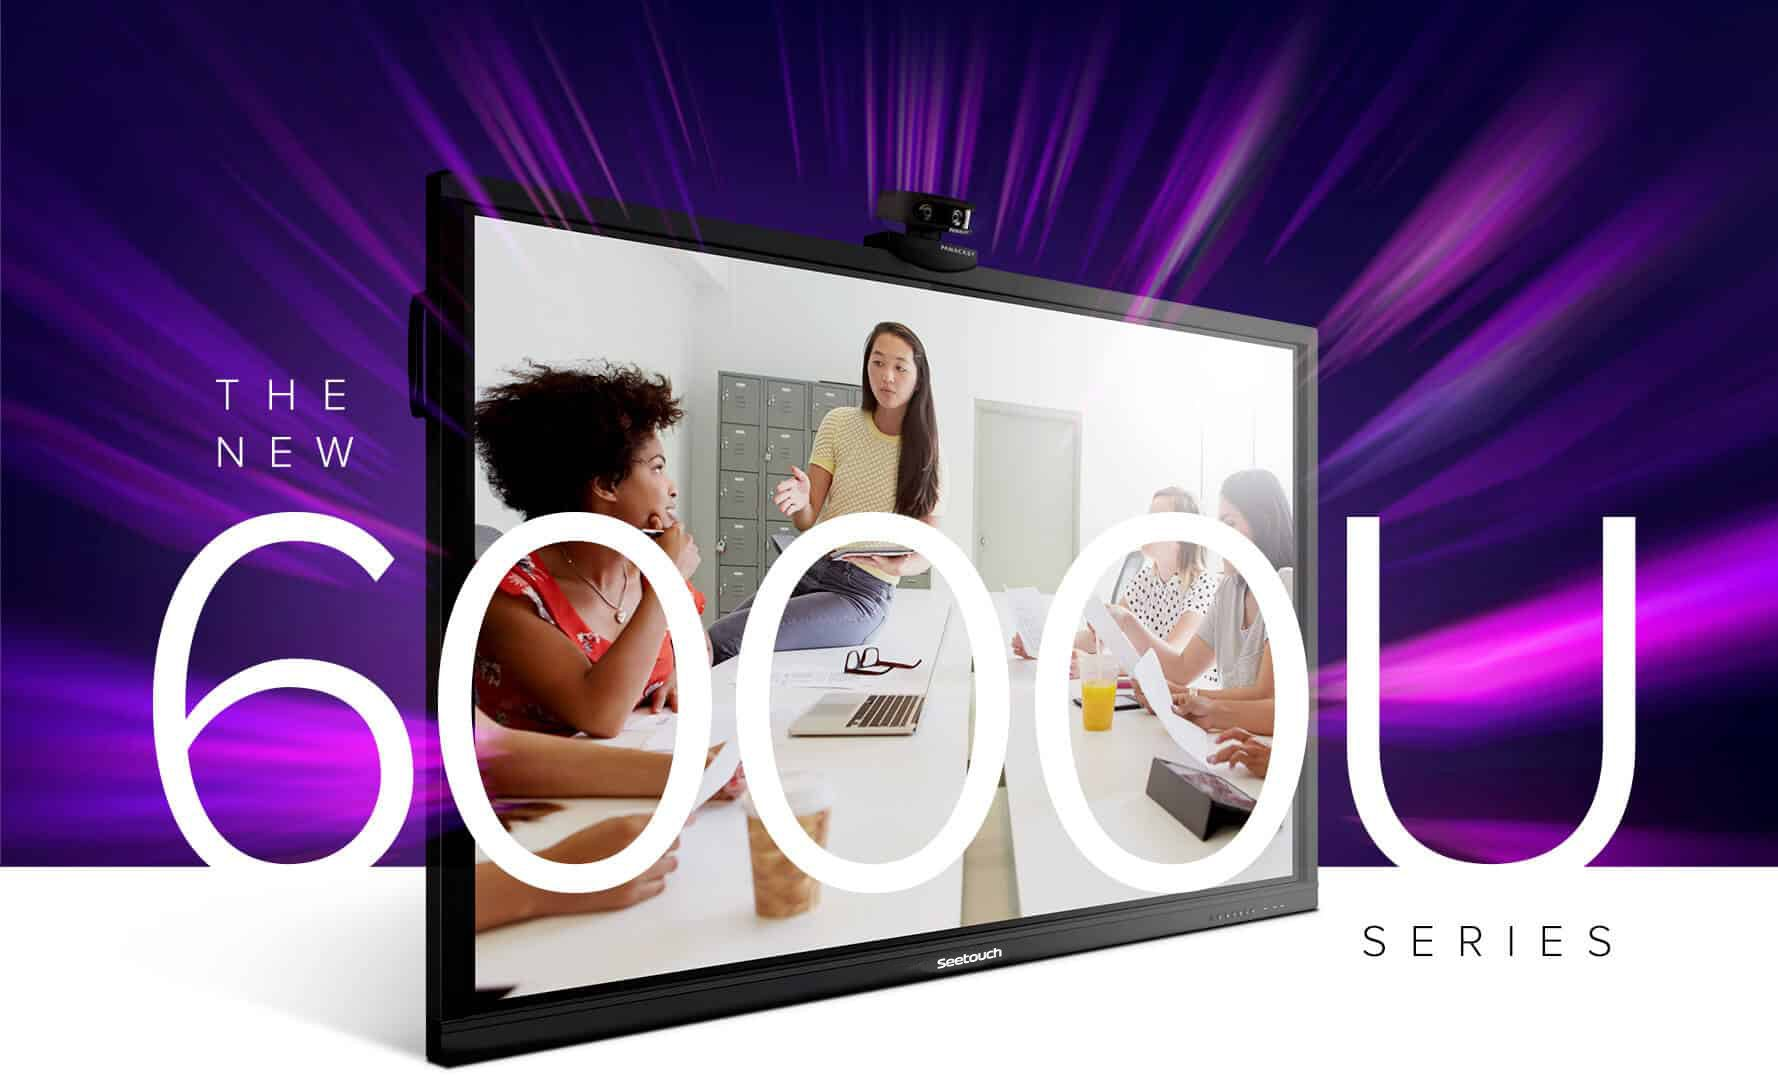 seetouch_the-new-6000u-series_business-banner_Panacast